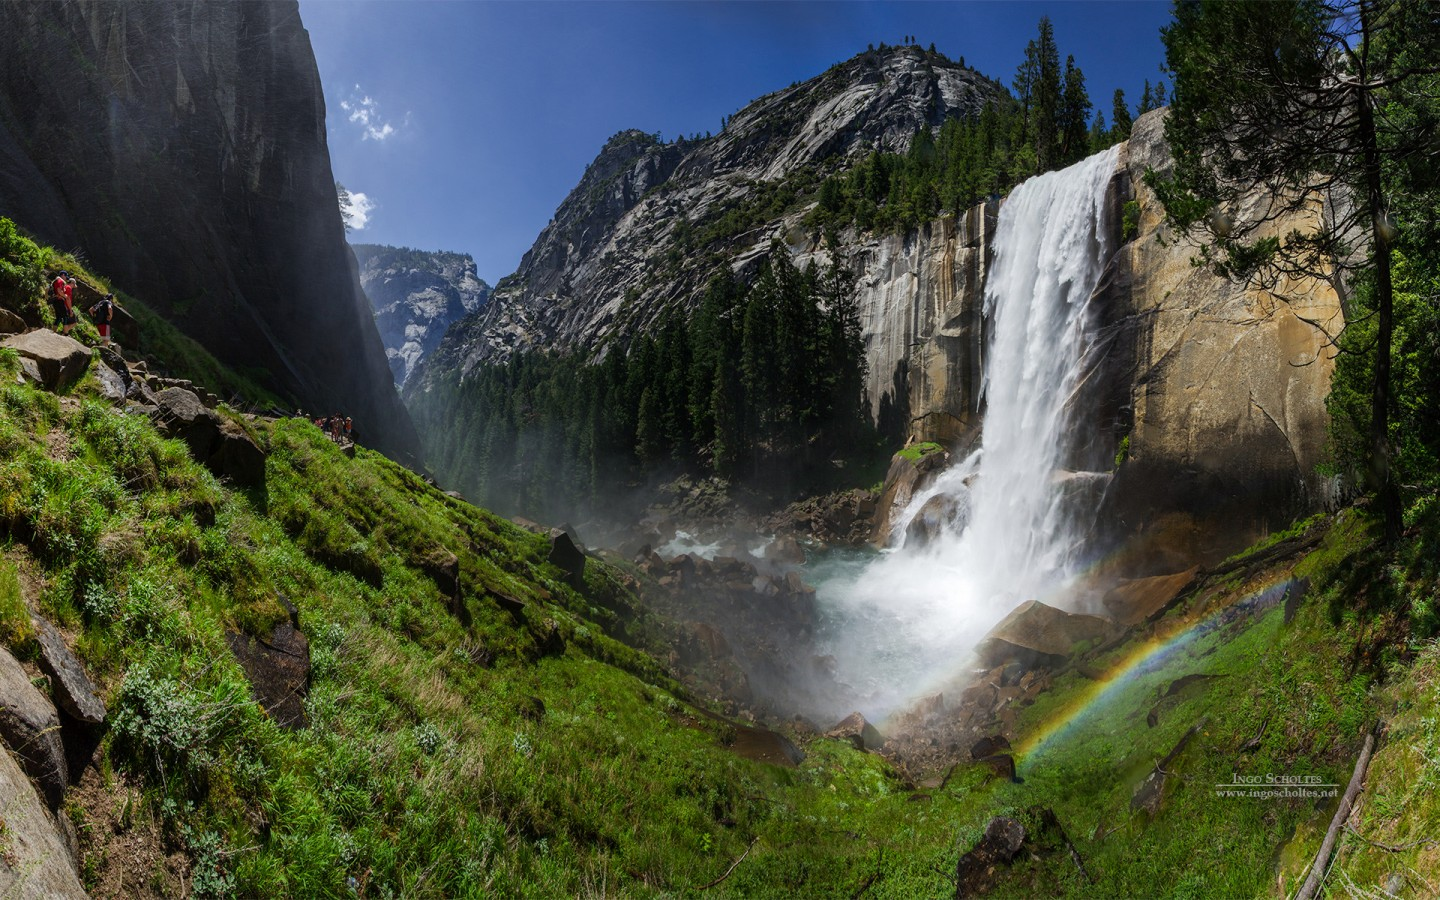 Cute Wallpapers For March Vernal Fall Yosemite National Park Wallpapers Hd